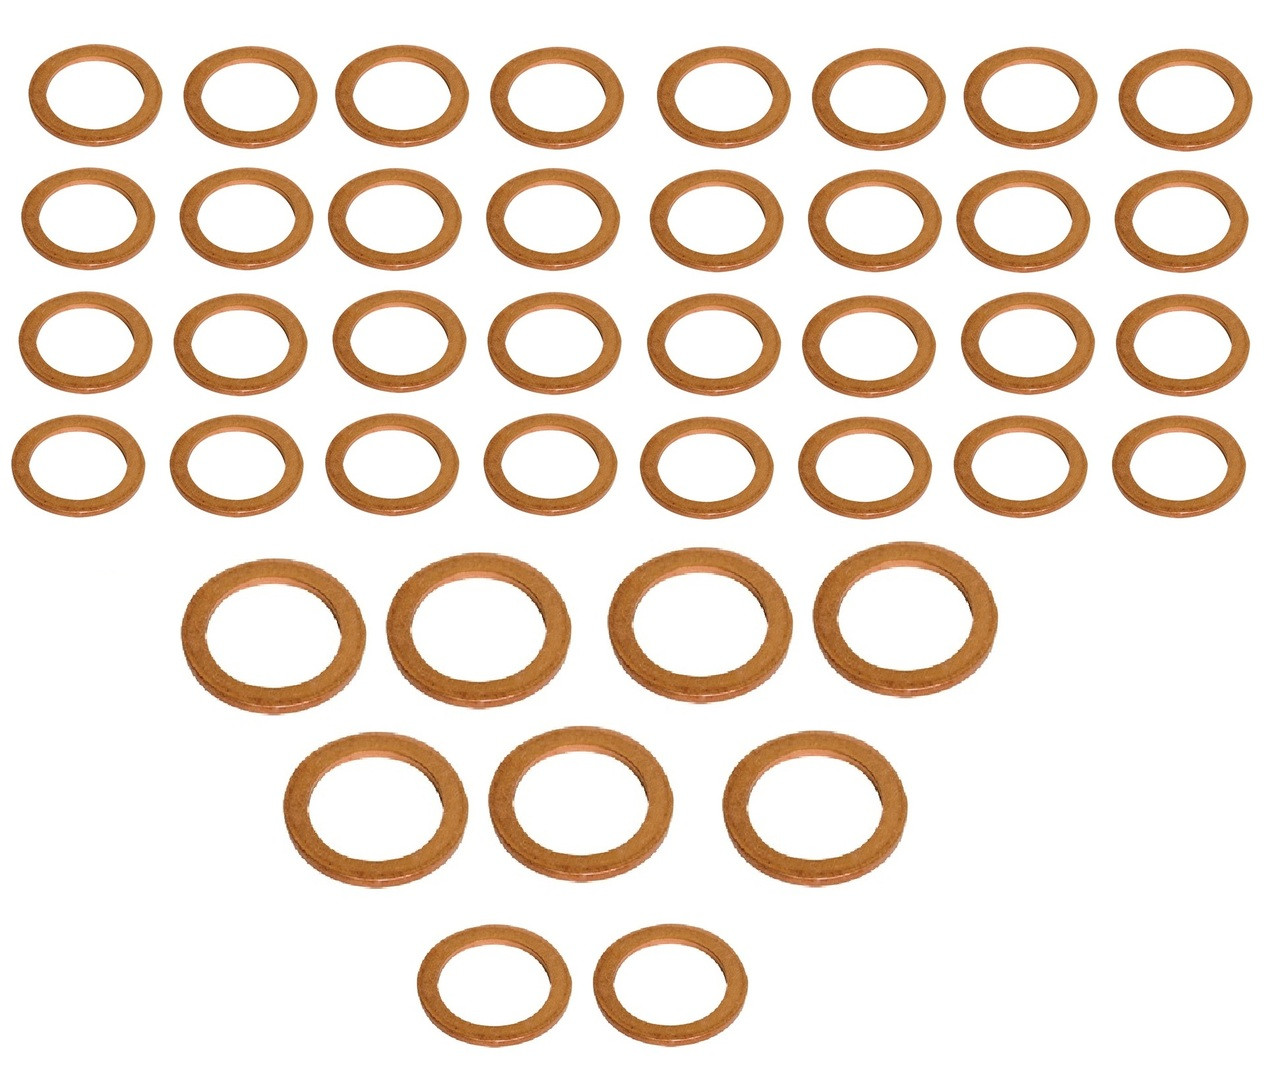 COPPER SEALING WASHER KIT (FUEL SYSTEM)